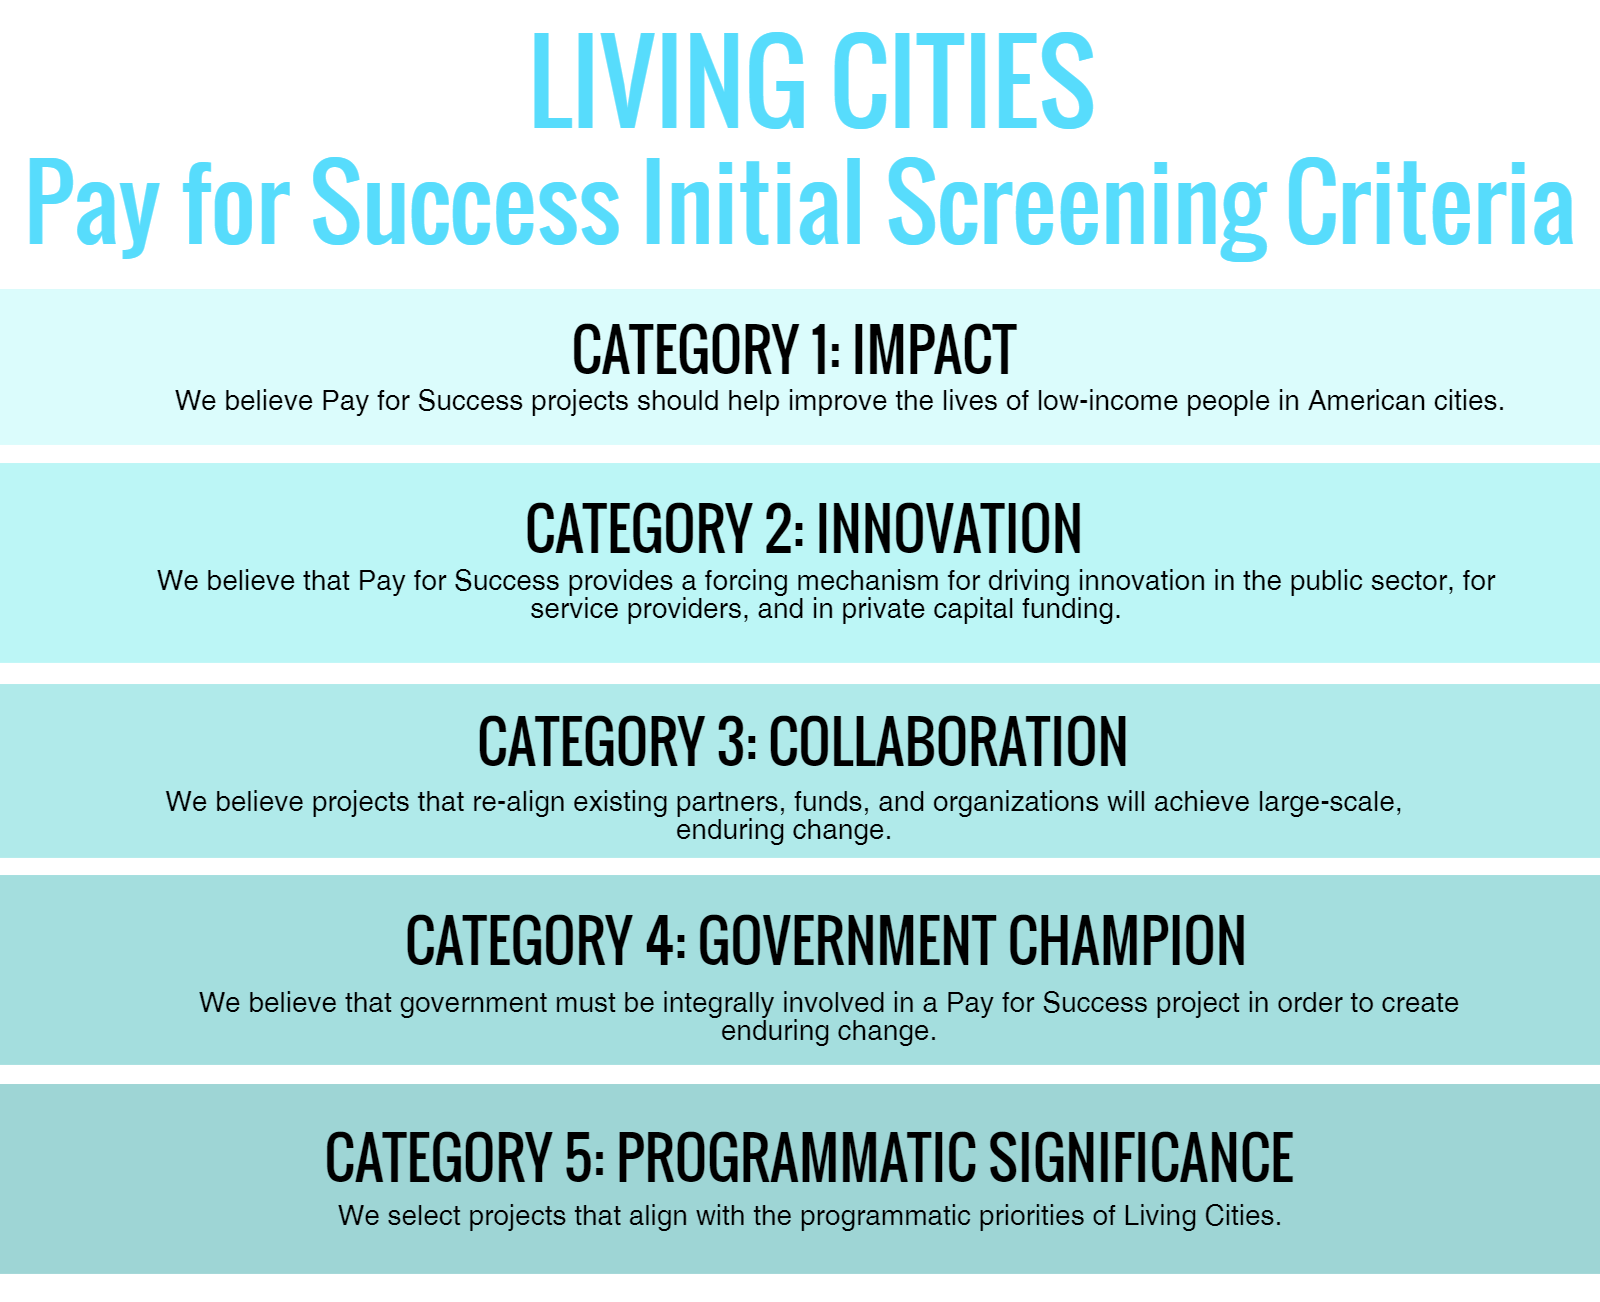 Living Cities Pay for Success Initial Screening Criteria, an infographic.